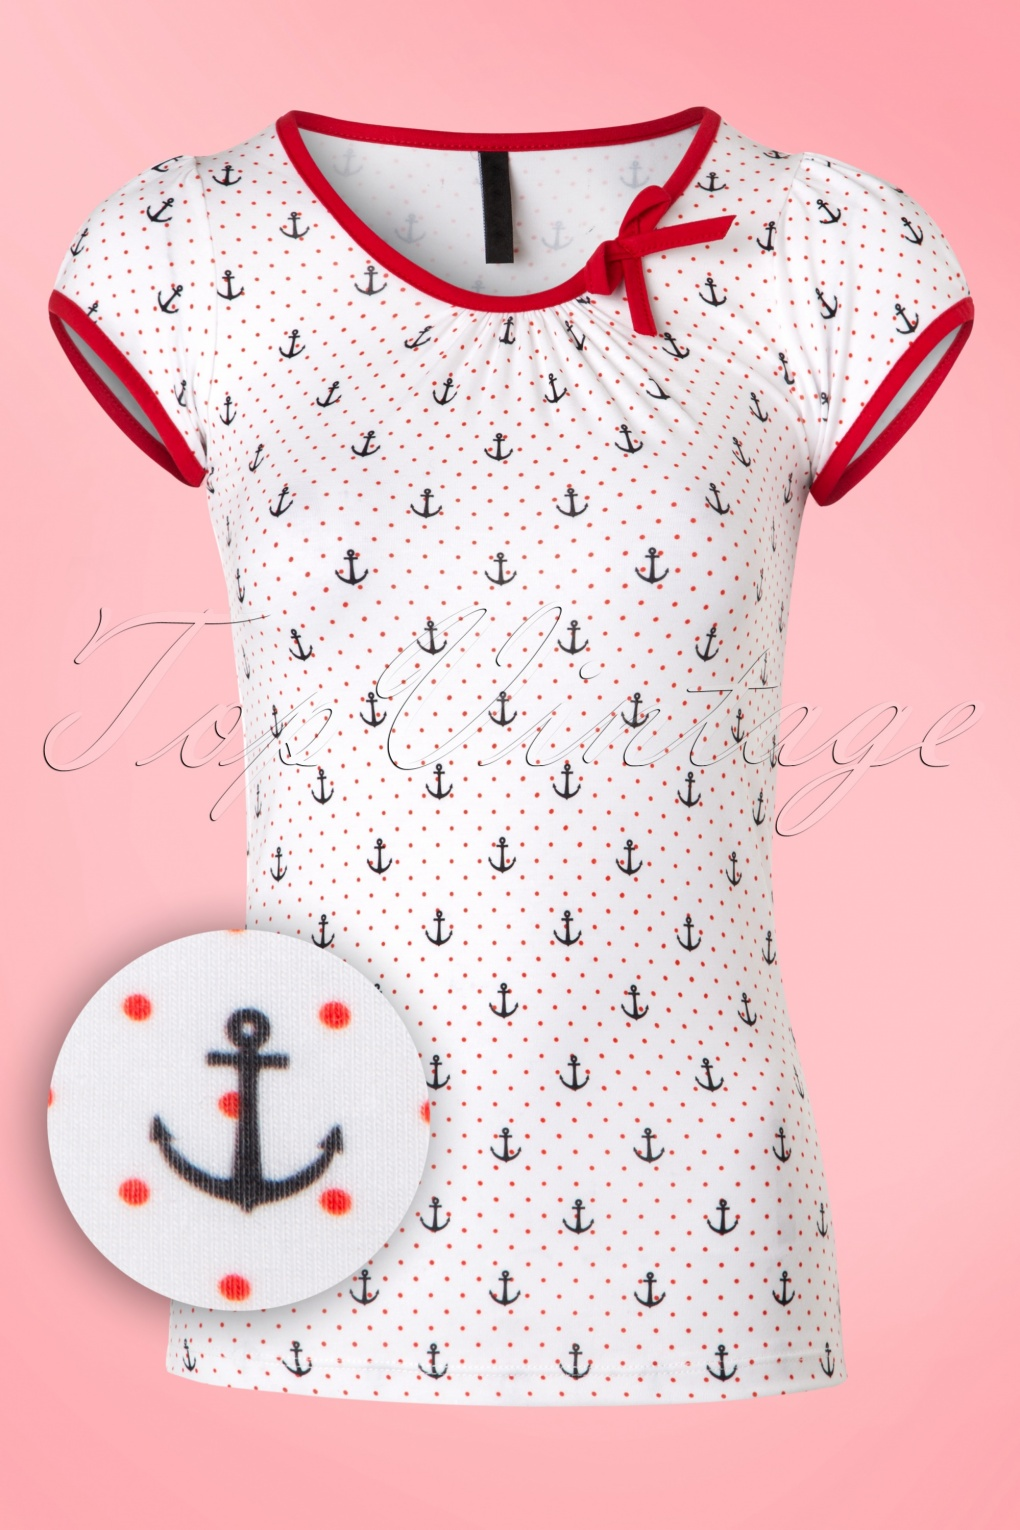 Vintage & Retro Shirts, Halter Tops, Blouses 50s Leona Anchor Top in White and Red £27.05 AT vintagedancer.com